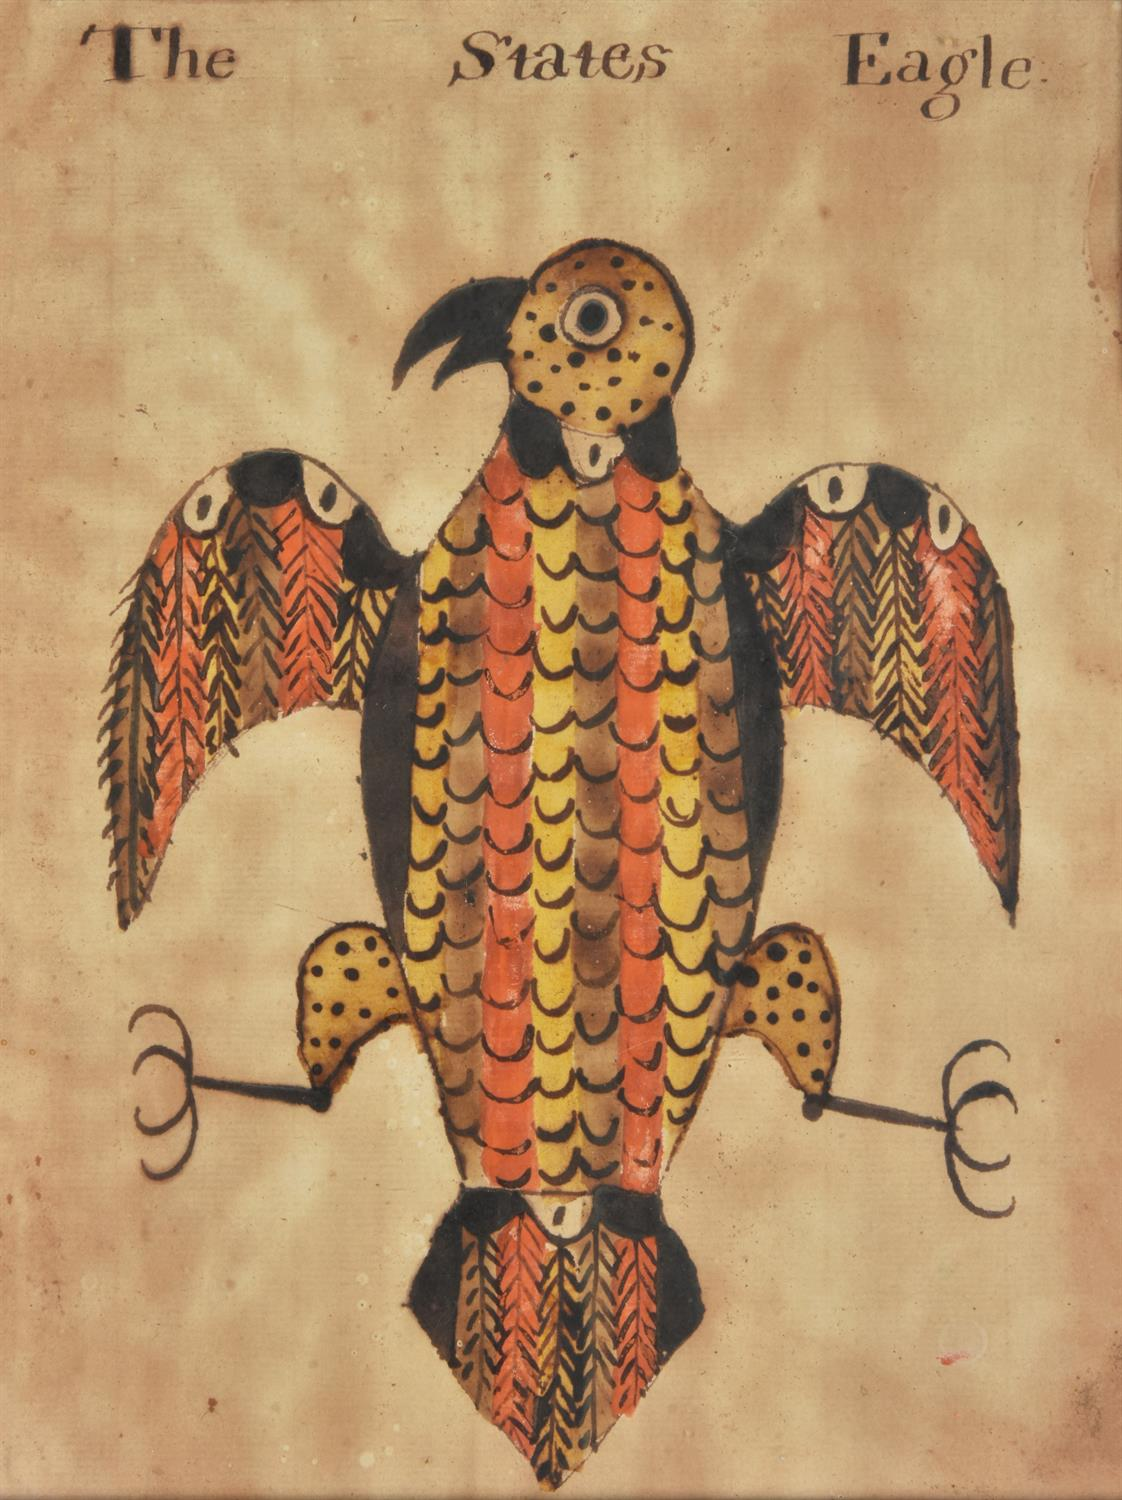 American School (early 19th century) , The States Eagle - Image 2 of 3